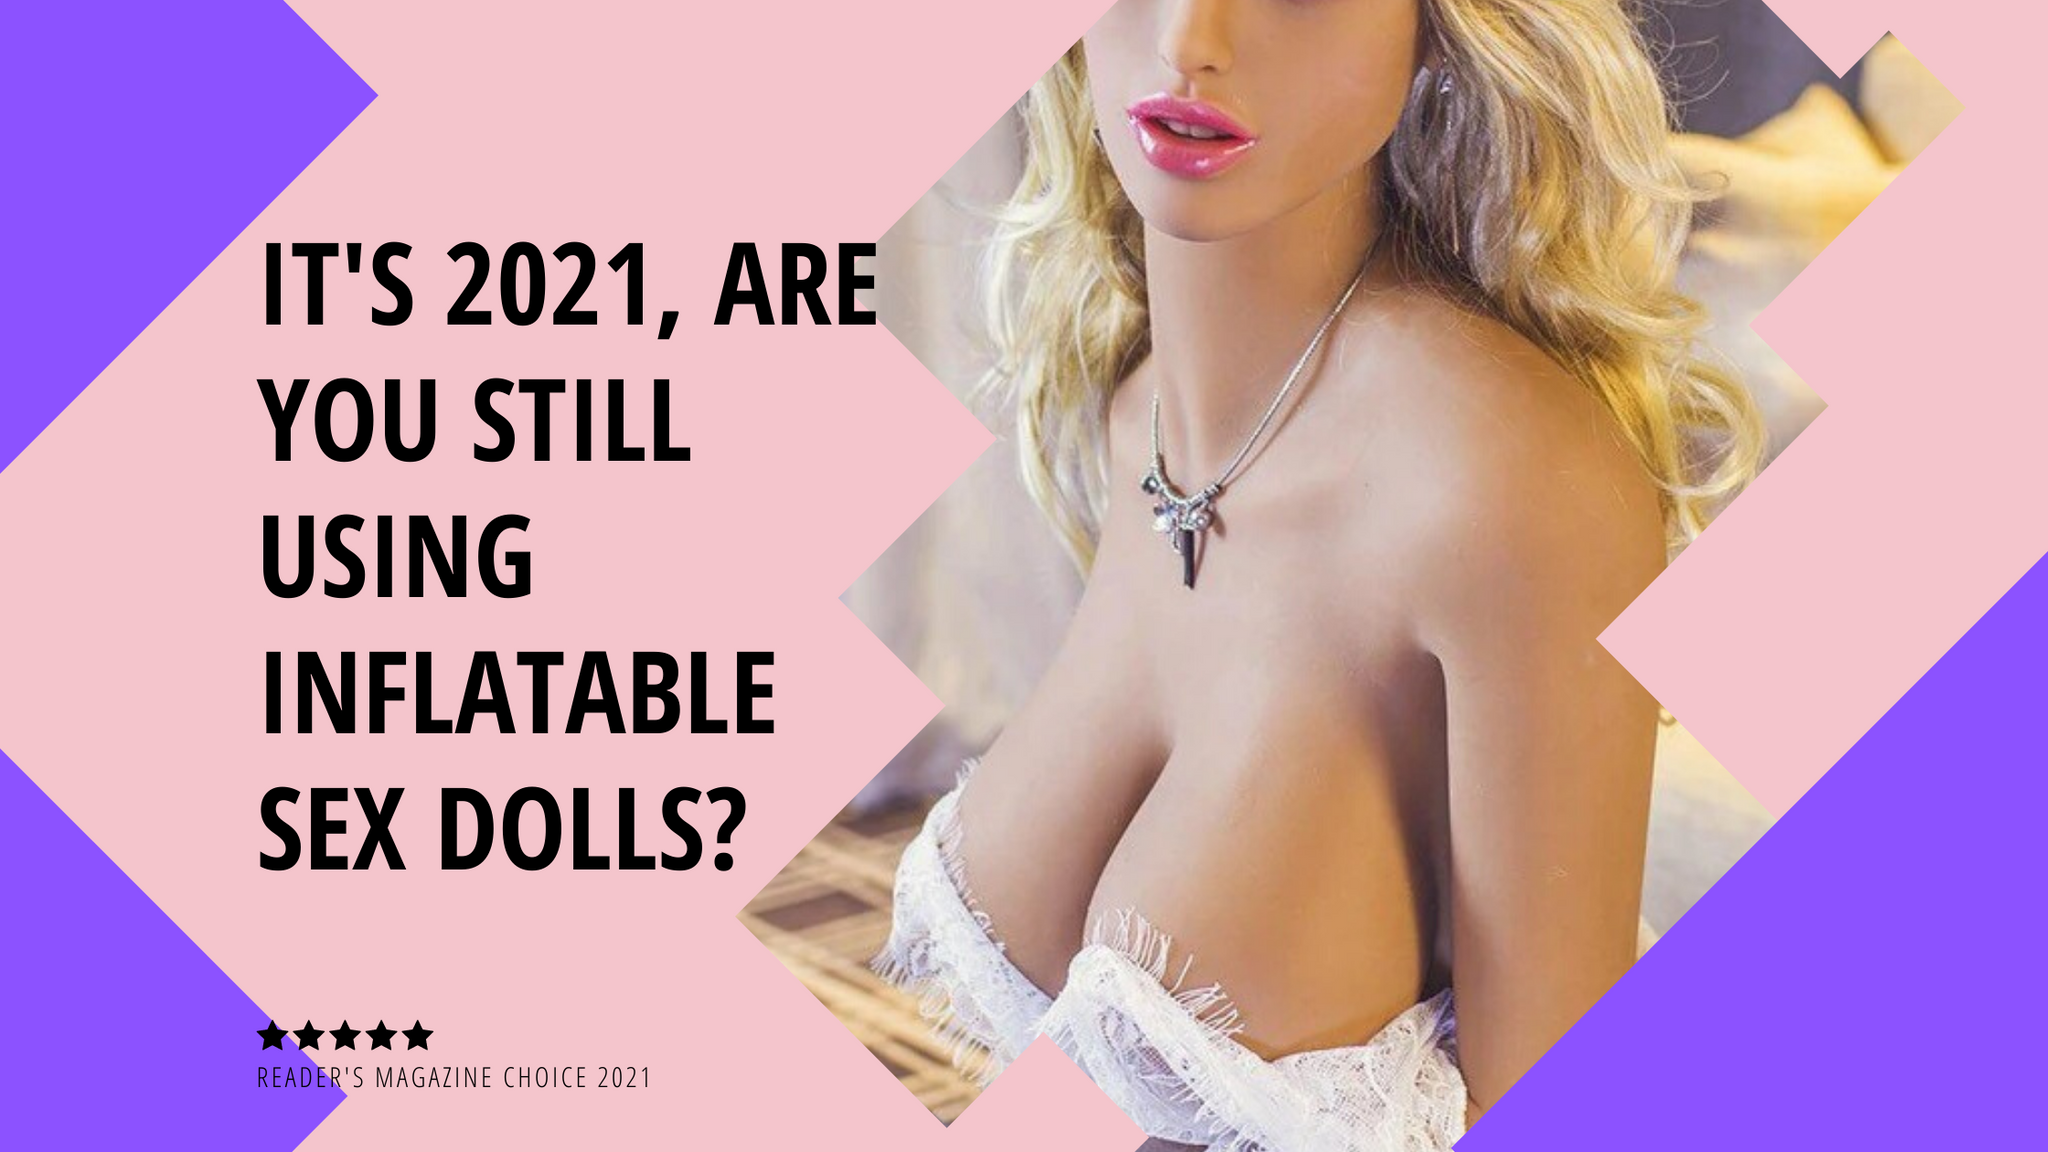 It's 2021, are you still using inflatable sex dolls?